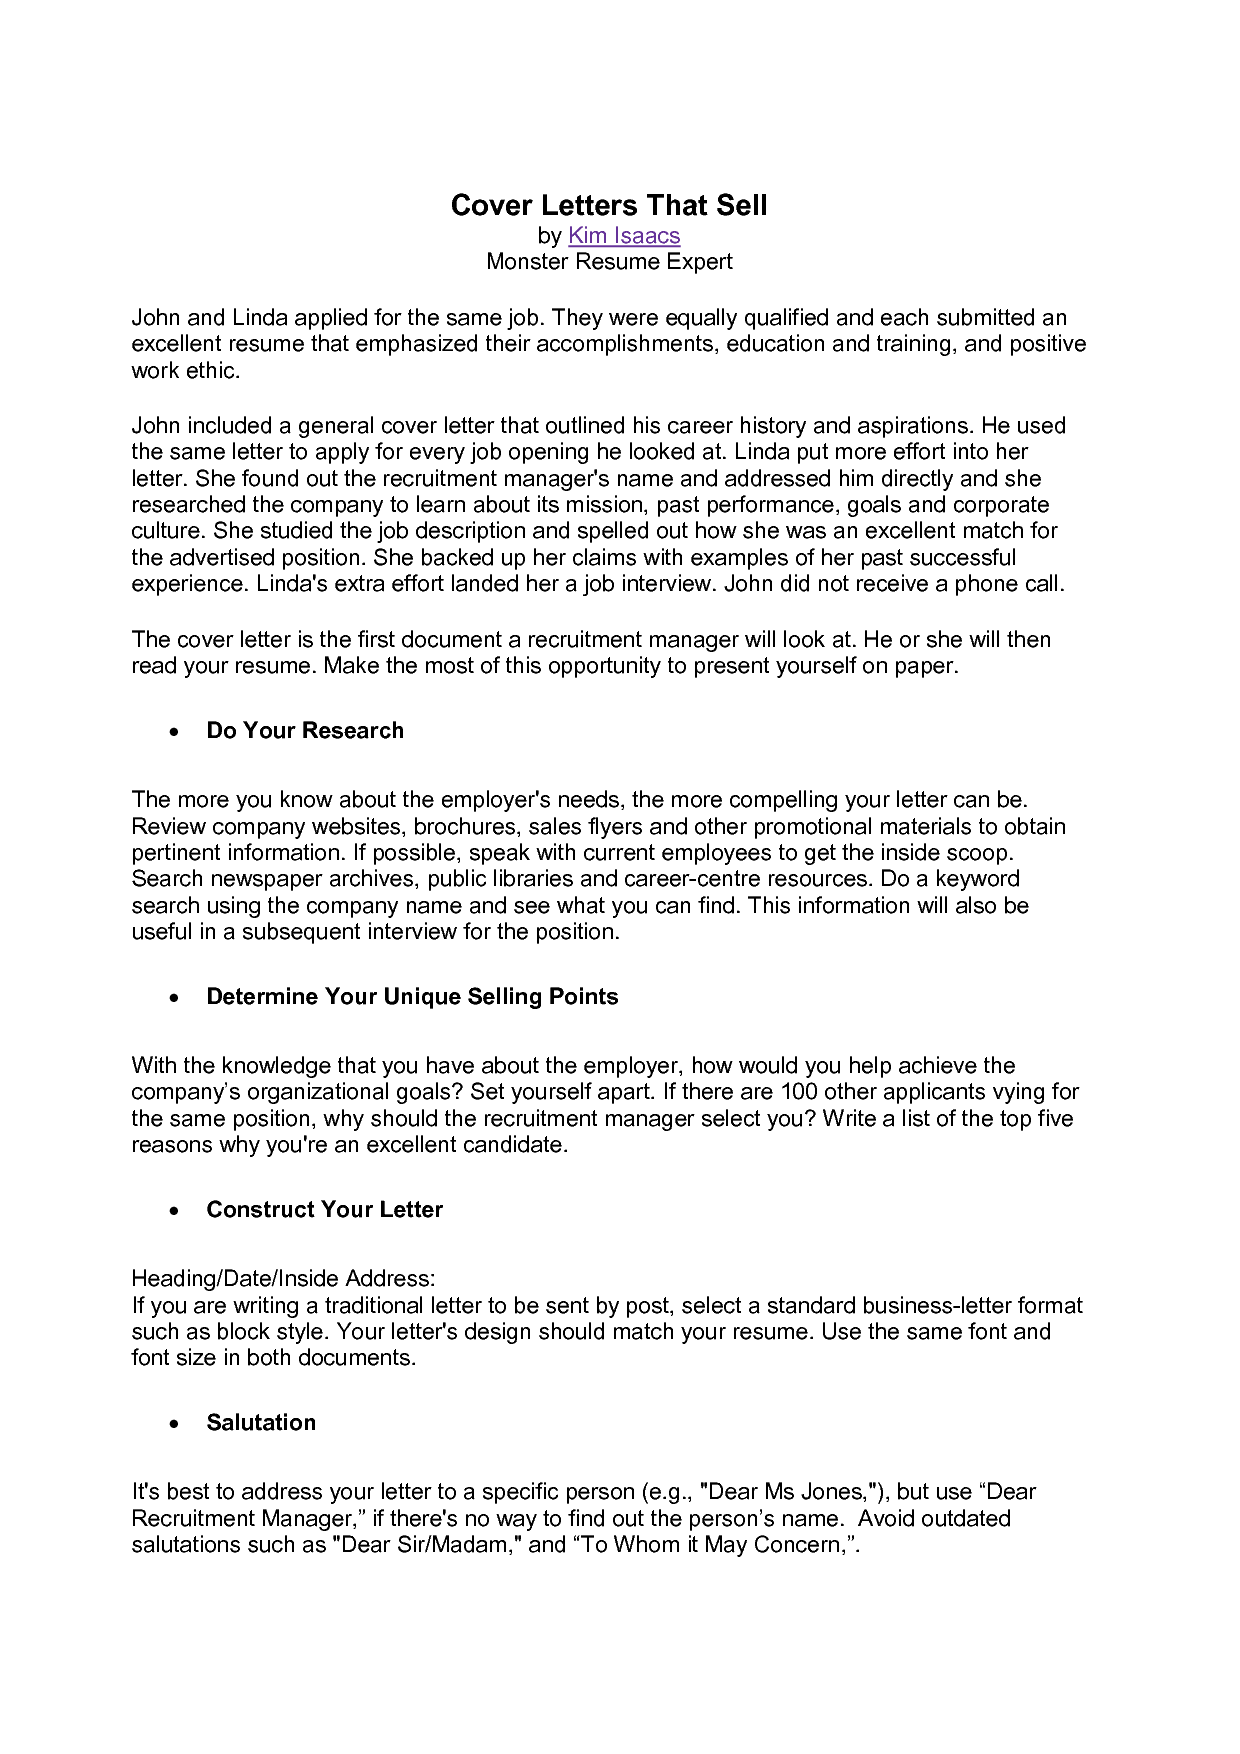 Monster Cover Letter Free Download Monster Cover Letter, Monster Cover  Letter Template, Monster Cover  Free Cover Letter Format